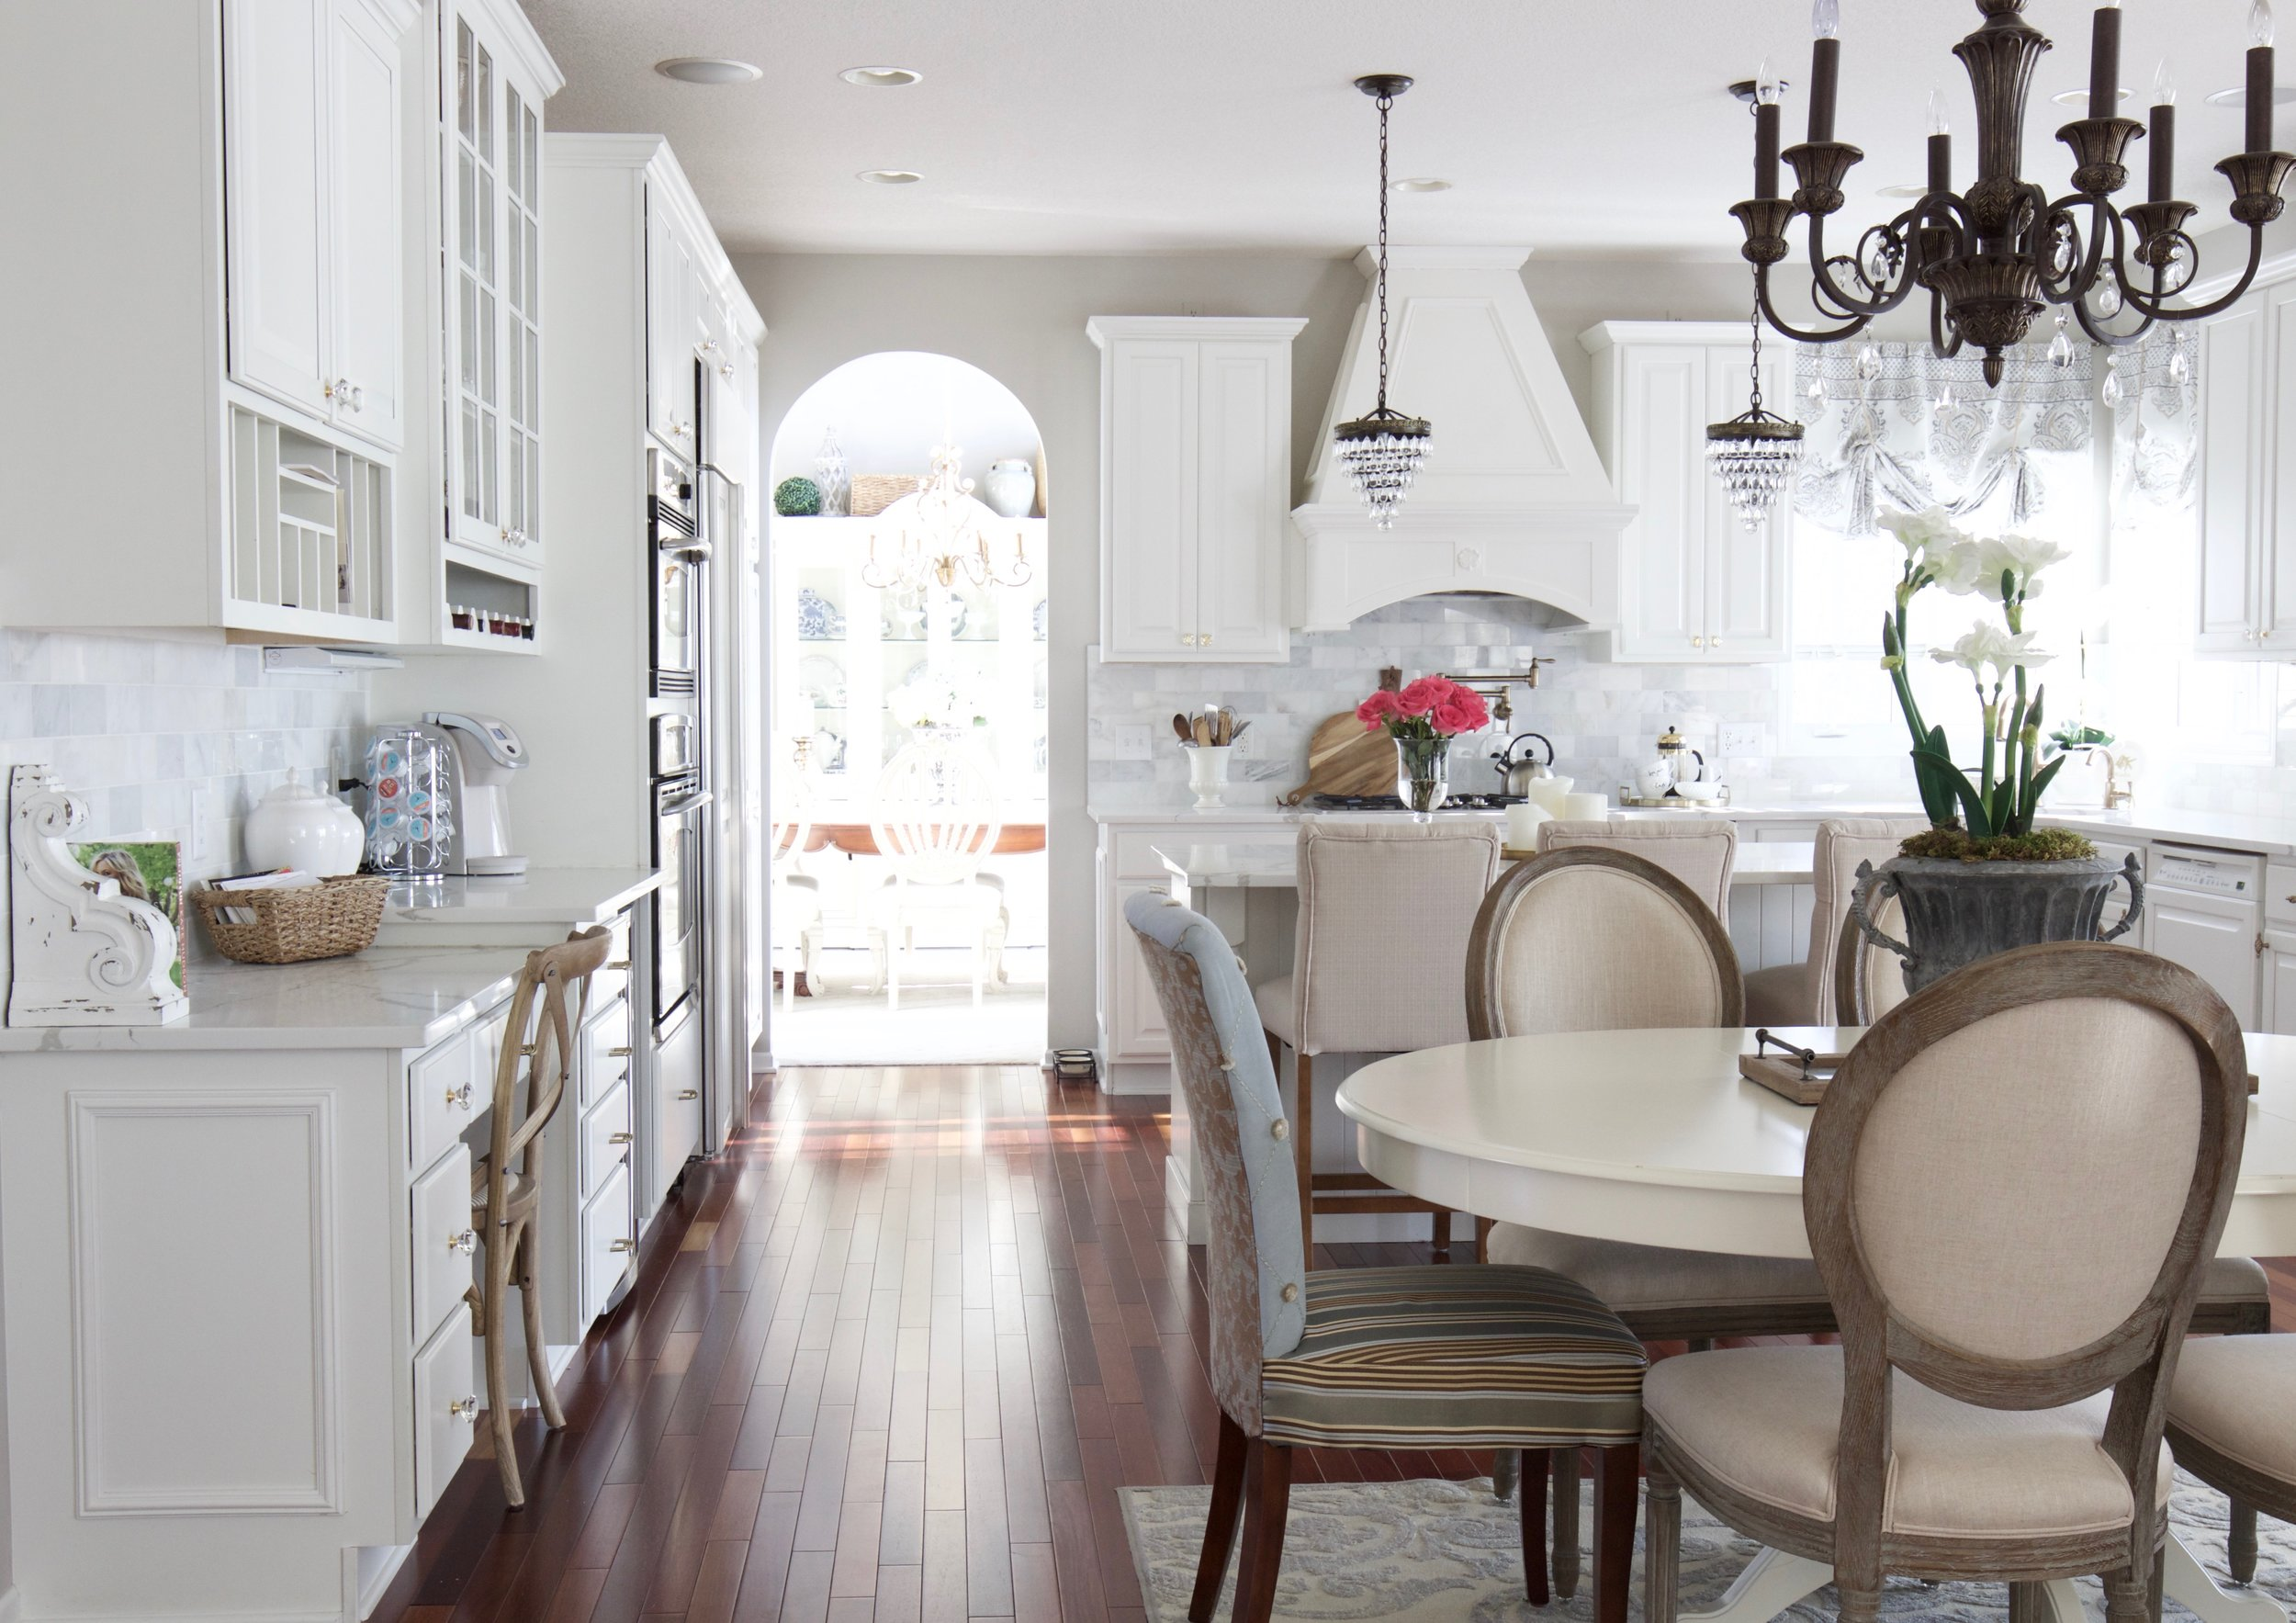 Kim\'s Bright White Kitchen Remodel - Styled With Lace